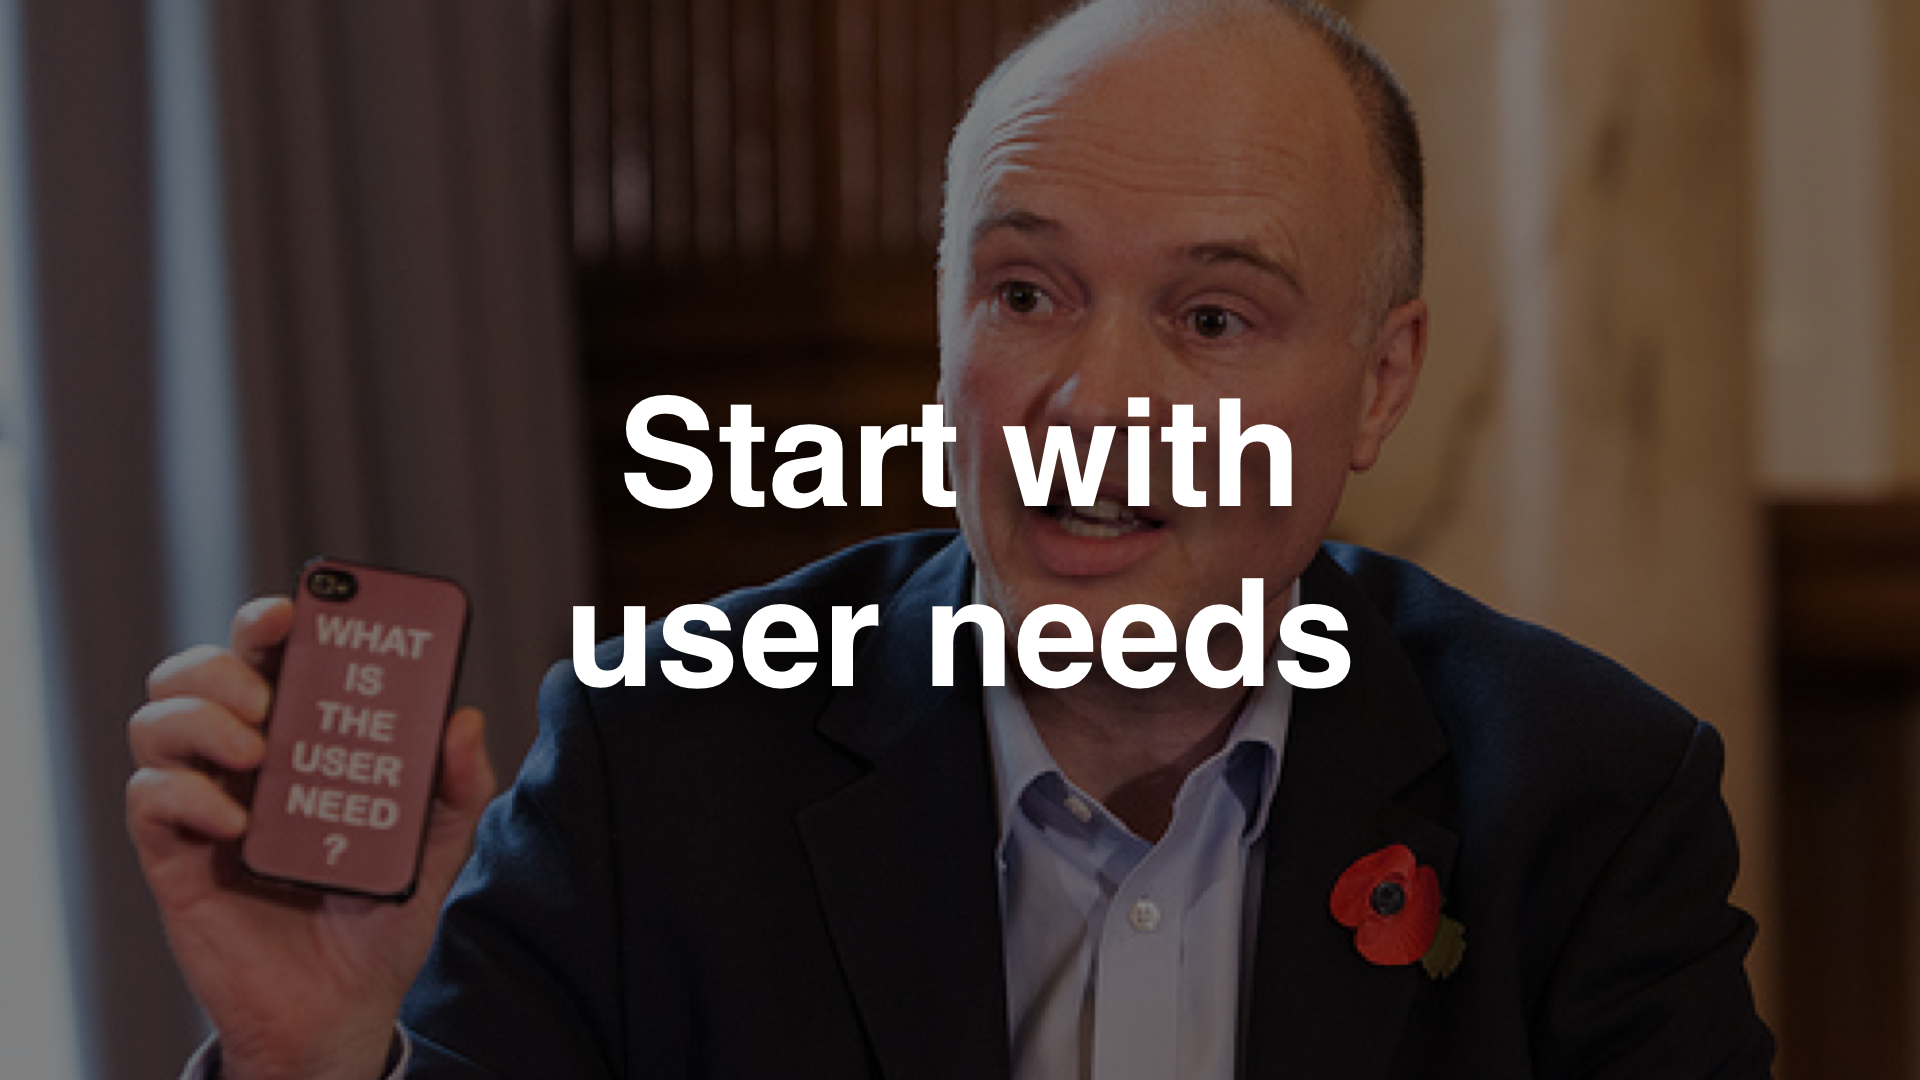 """Start with user needs"" - photo of Liam Maxwell holding a mobile phone that says ""what is the user need?"""